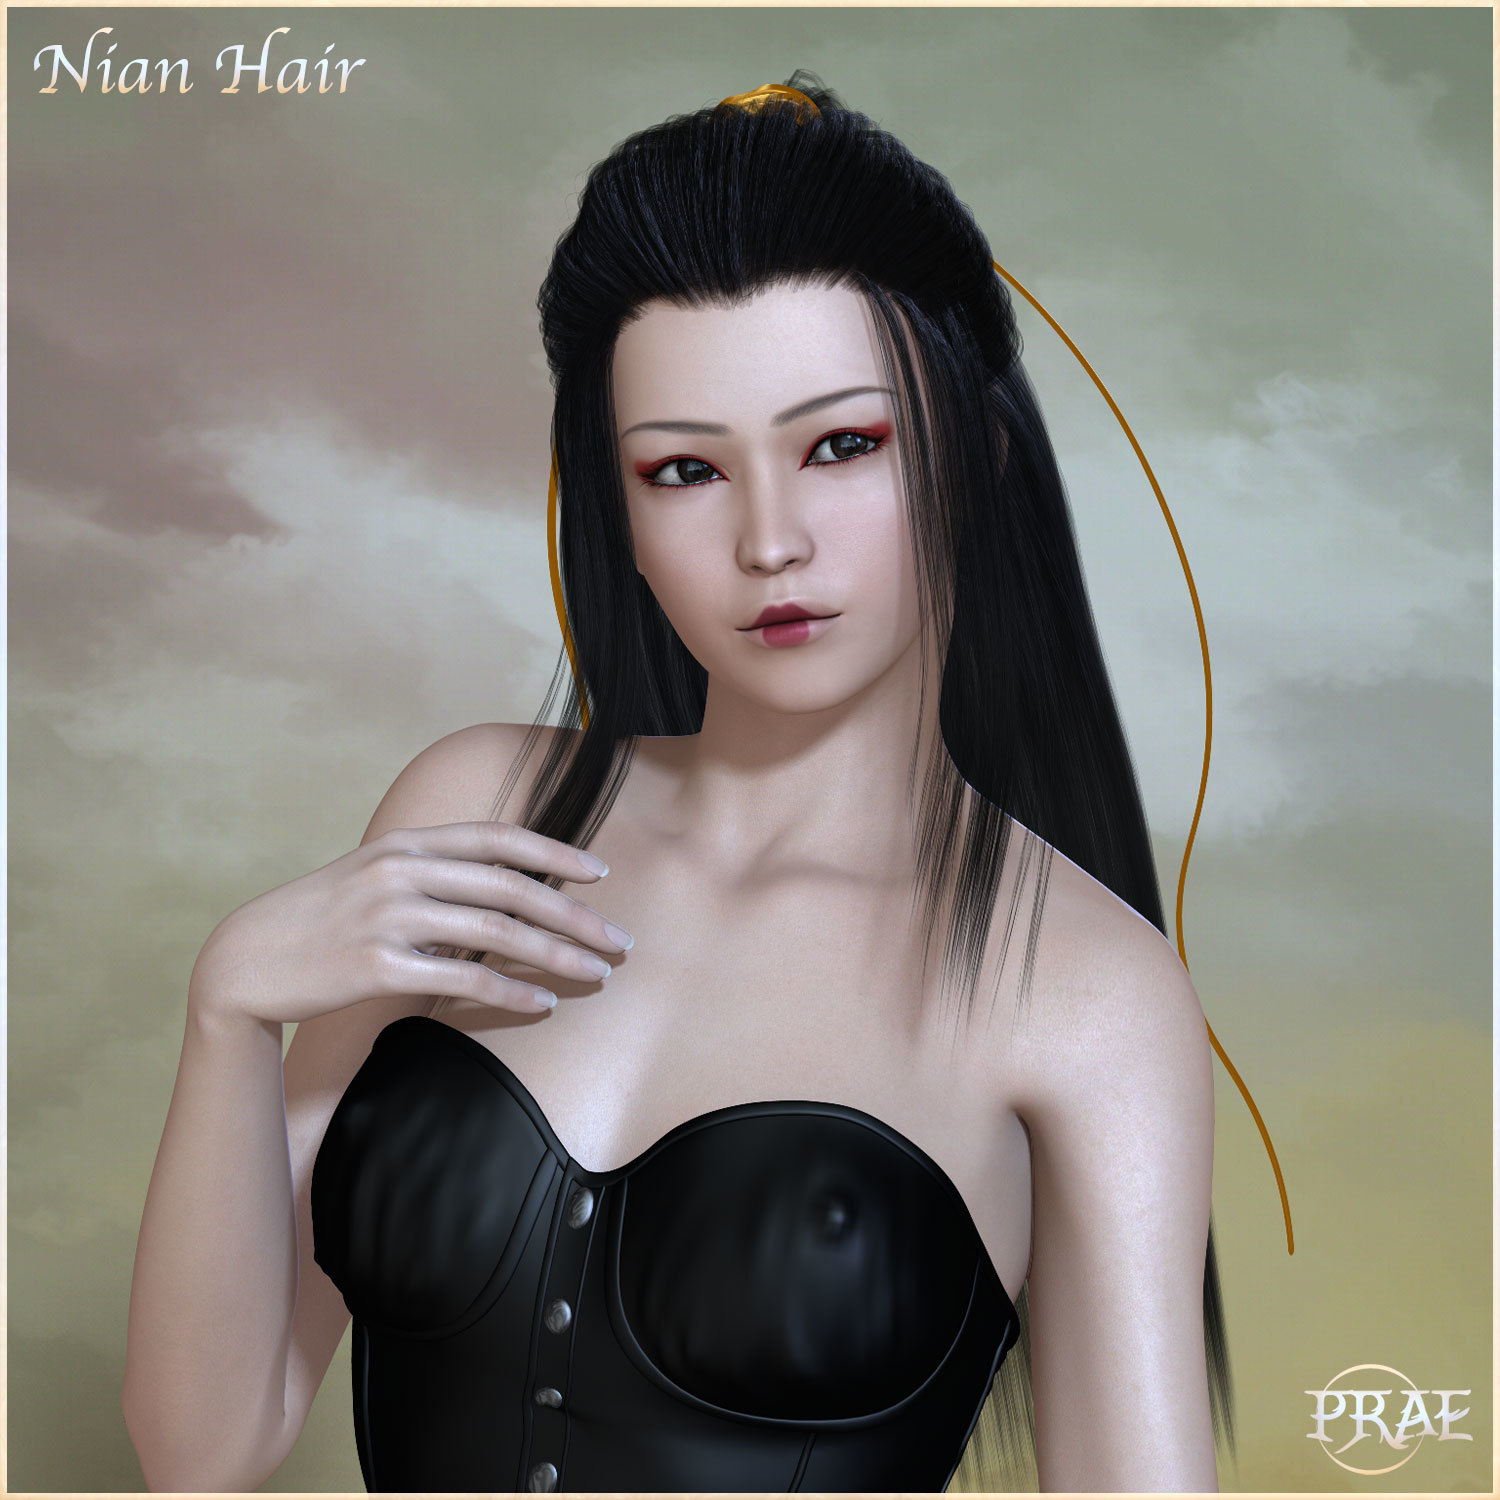 Prae-Nian Hair For Poser